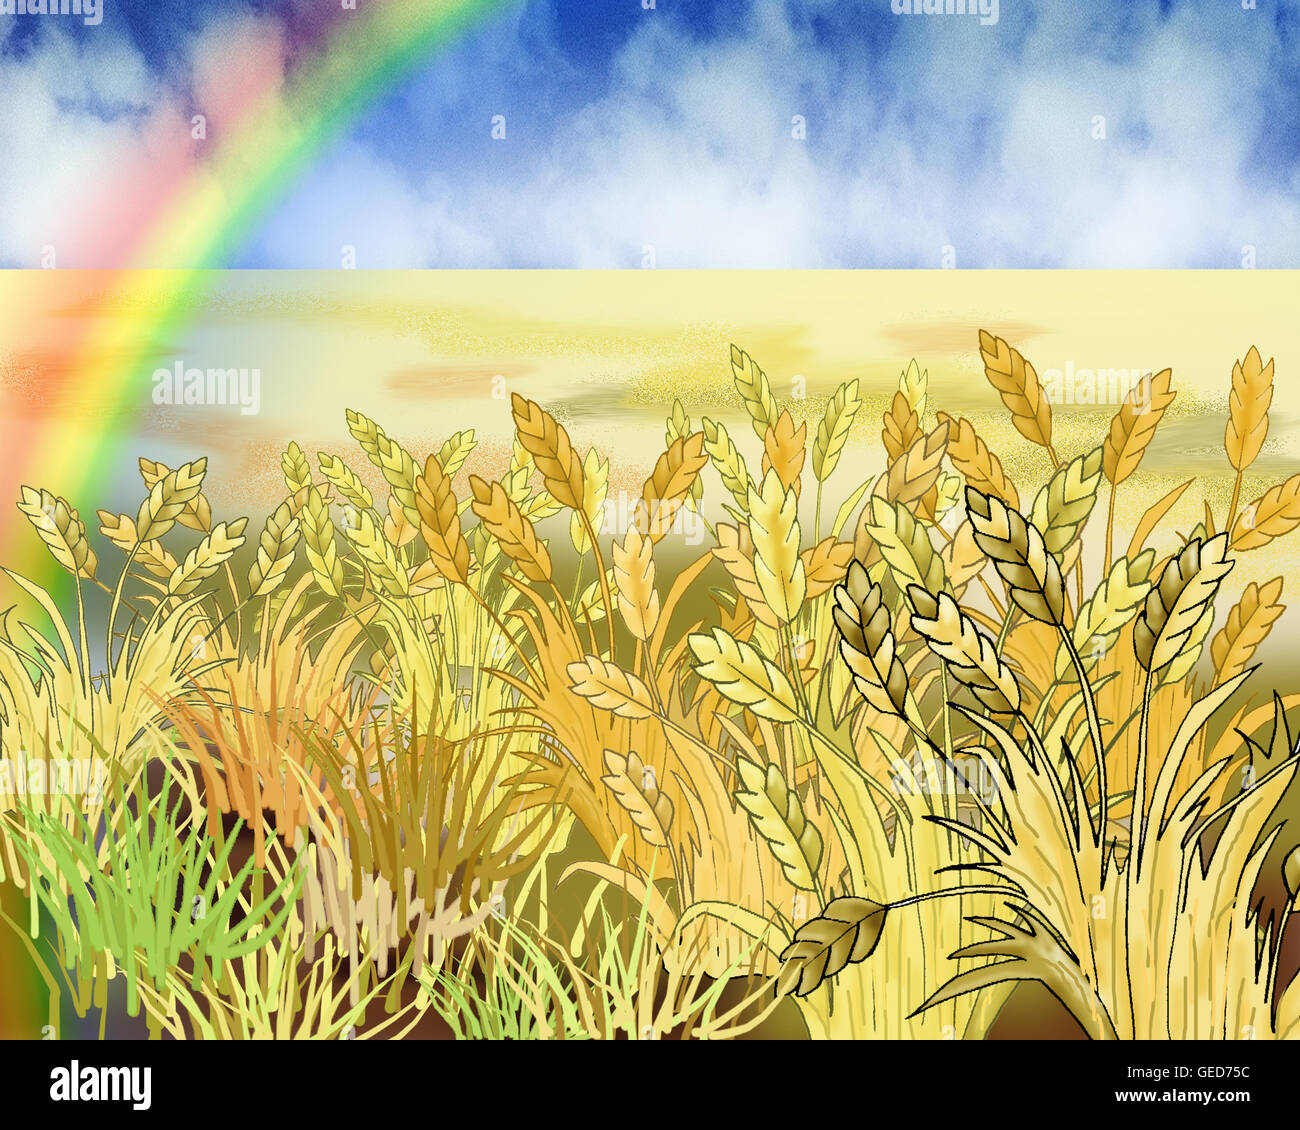 Rainbow Over Wheat Field in Summer Day. - Stock Image